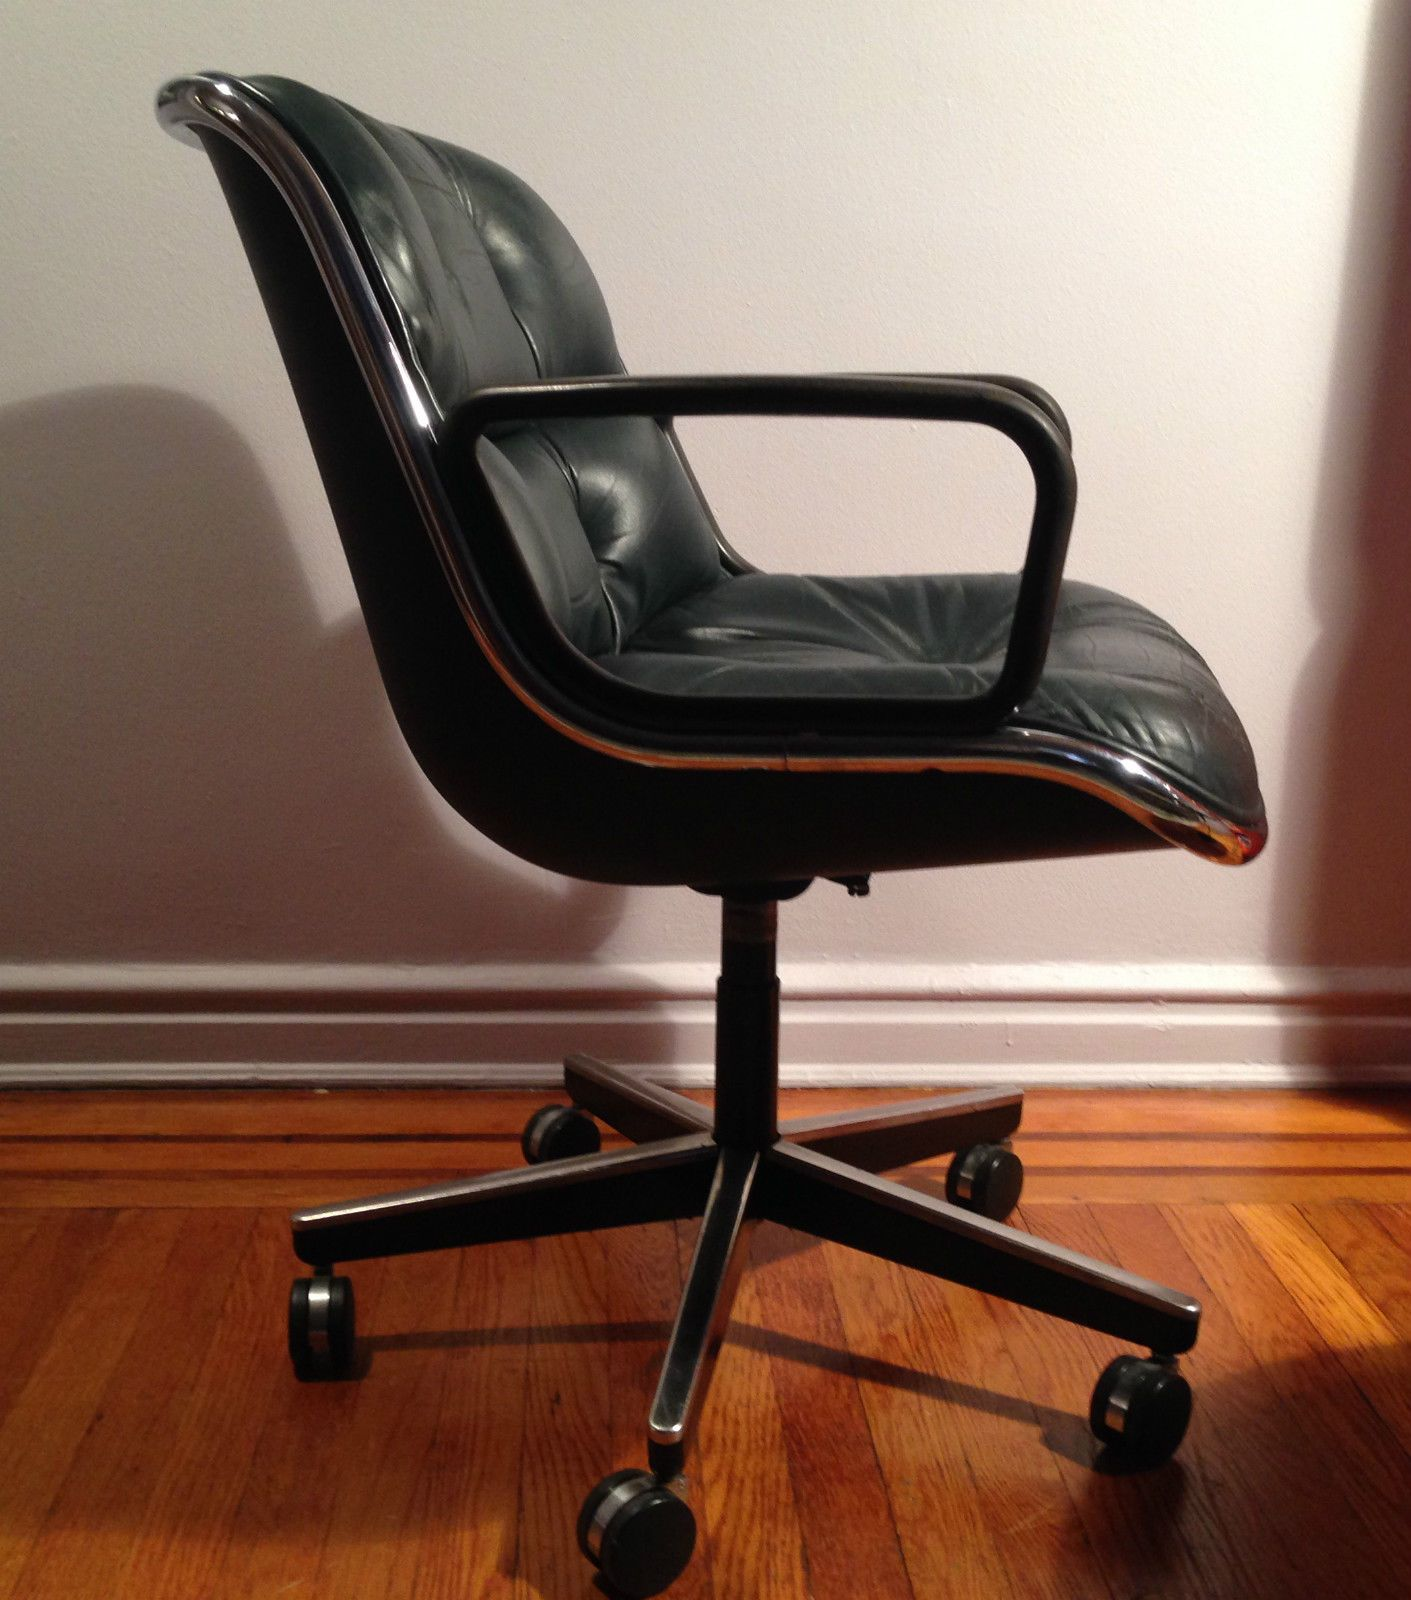 Vintage Pollock Desk fice Chair Knoll Mid Century Modern Leather